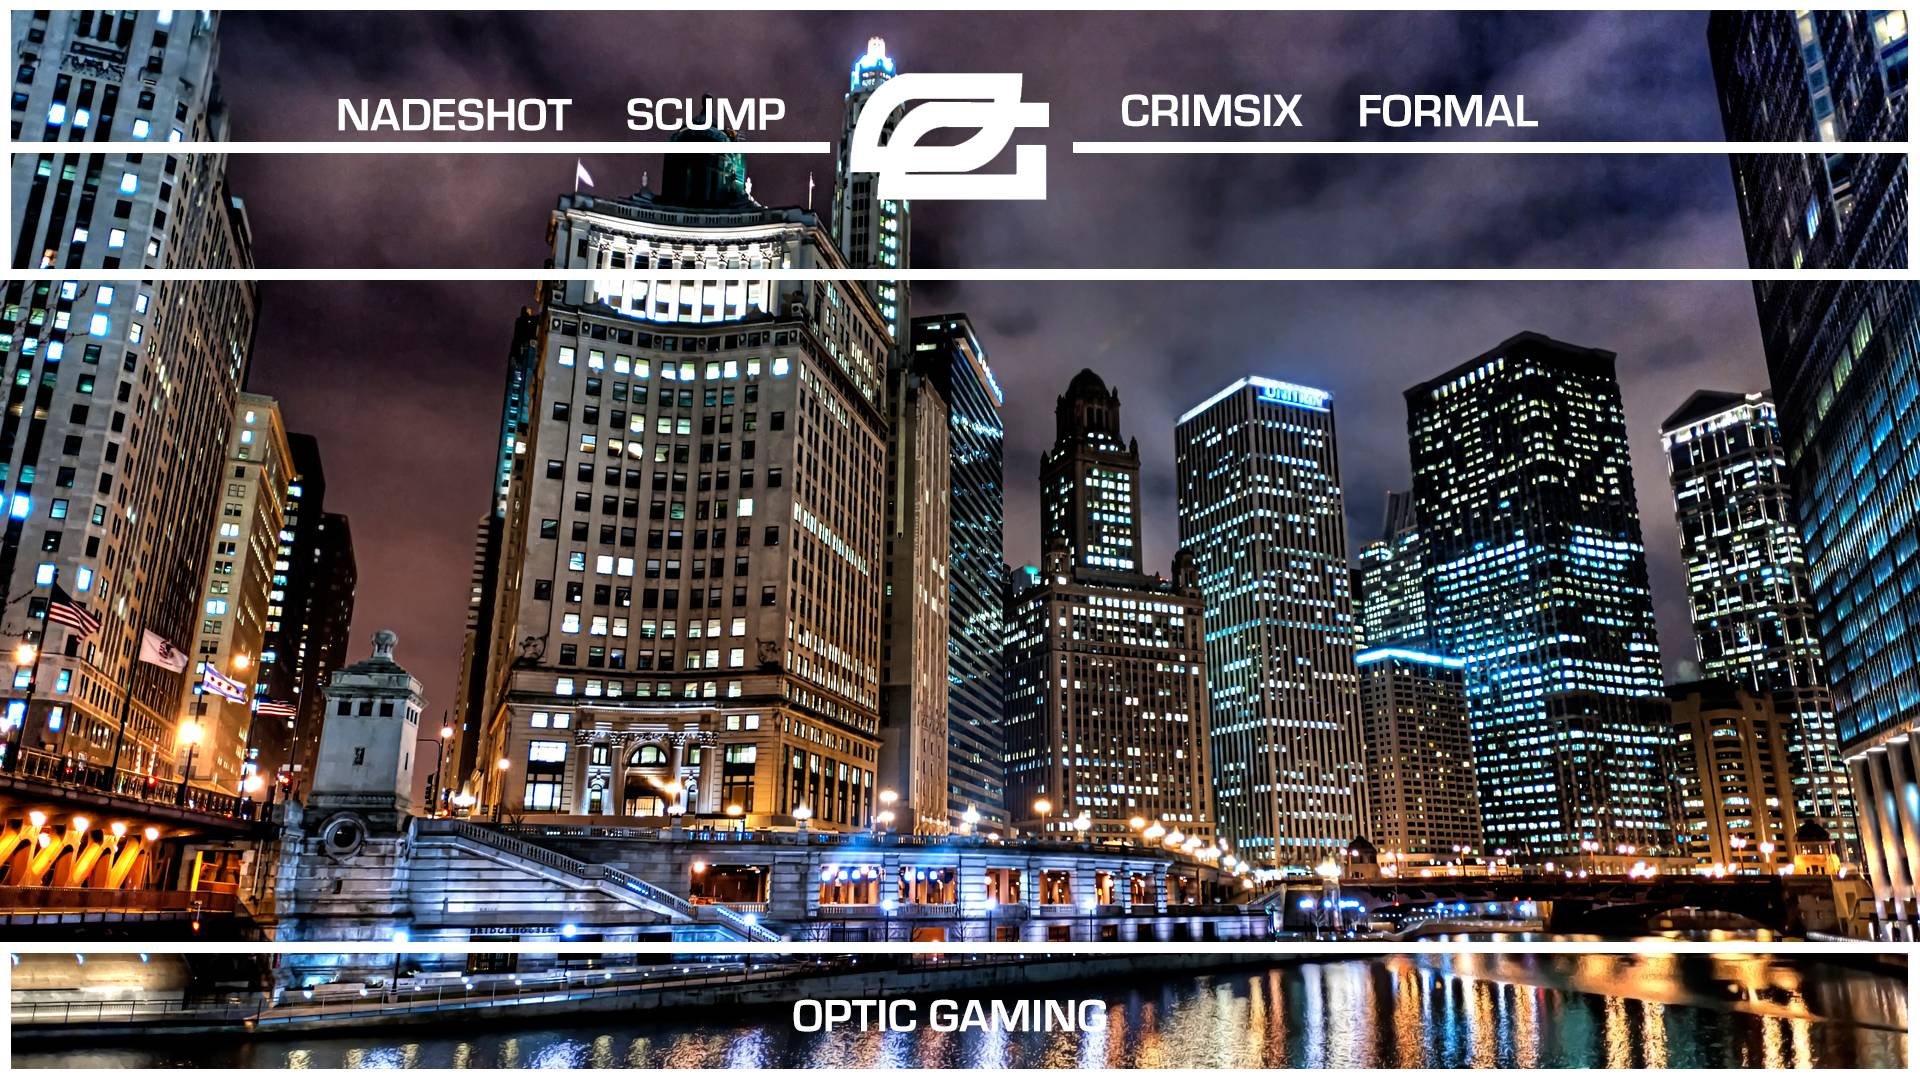 New OpTic Gaming Xbox One Dashboard Backgrounds : OpTicGaming